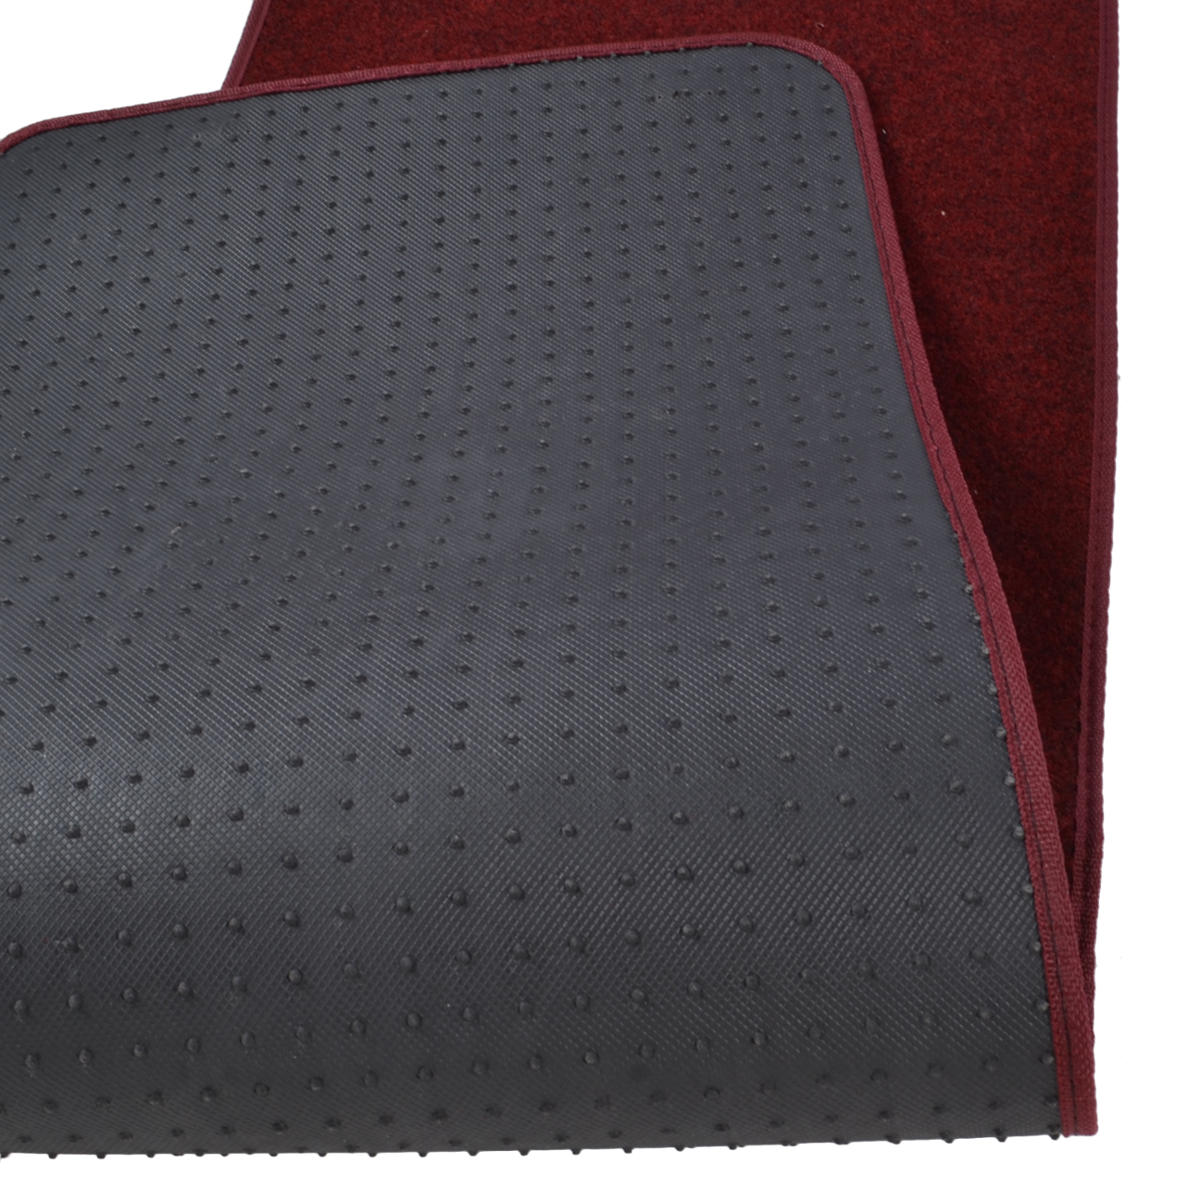 3pc set burgundy heavy duty carpet suv van pickup car floor mats front rear rug ebay. Black Bedroom Furniture Sets. Home Design Ideas